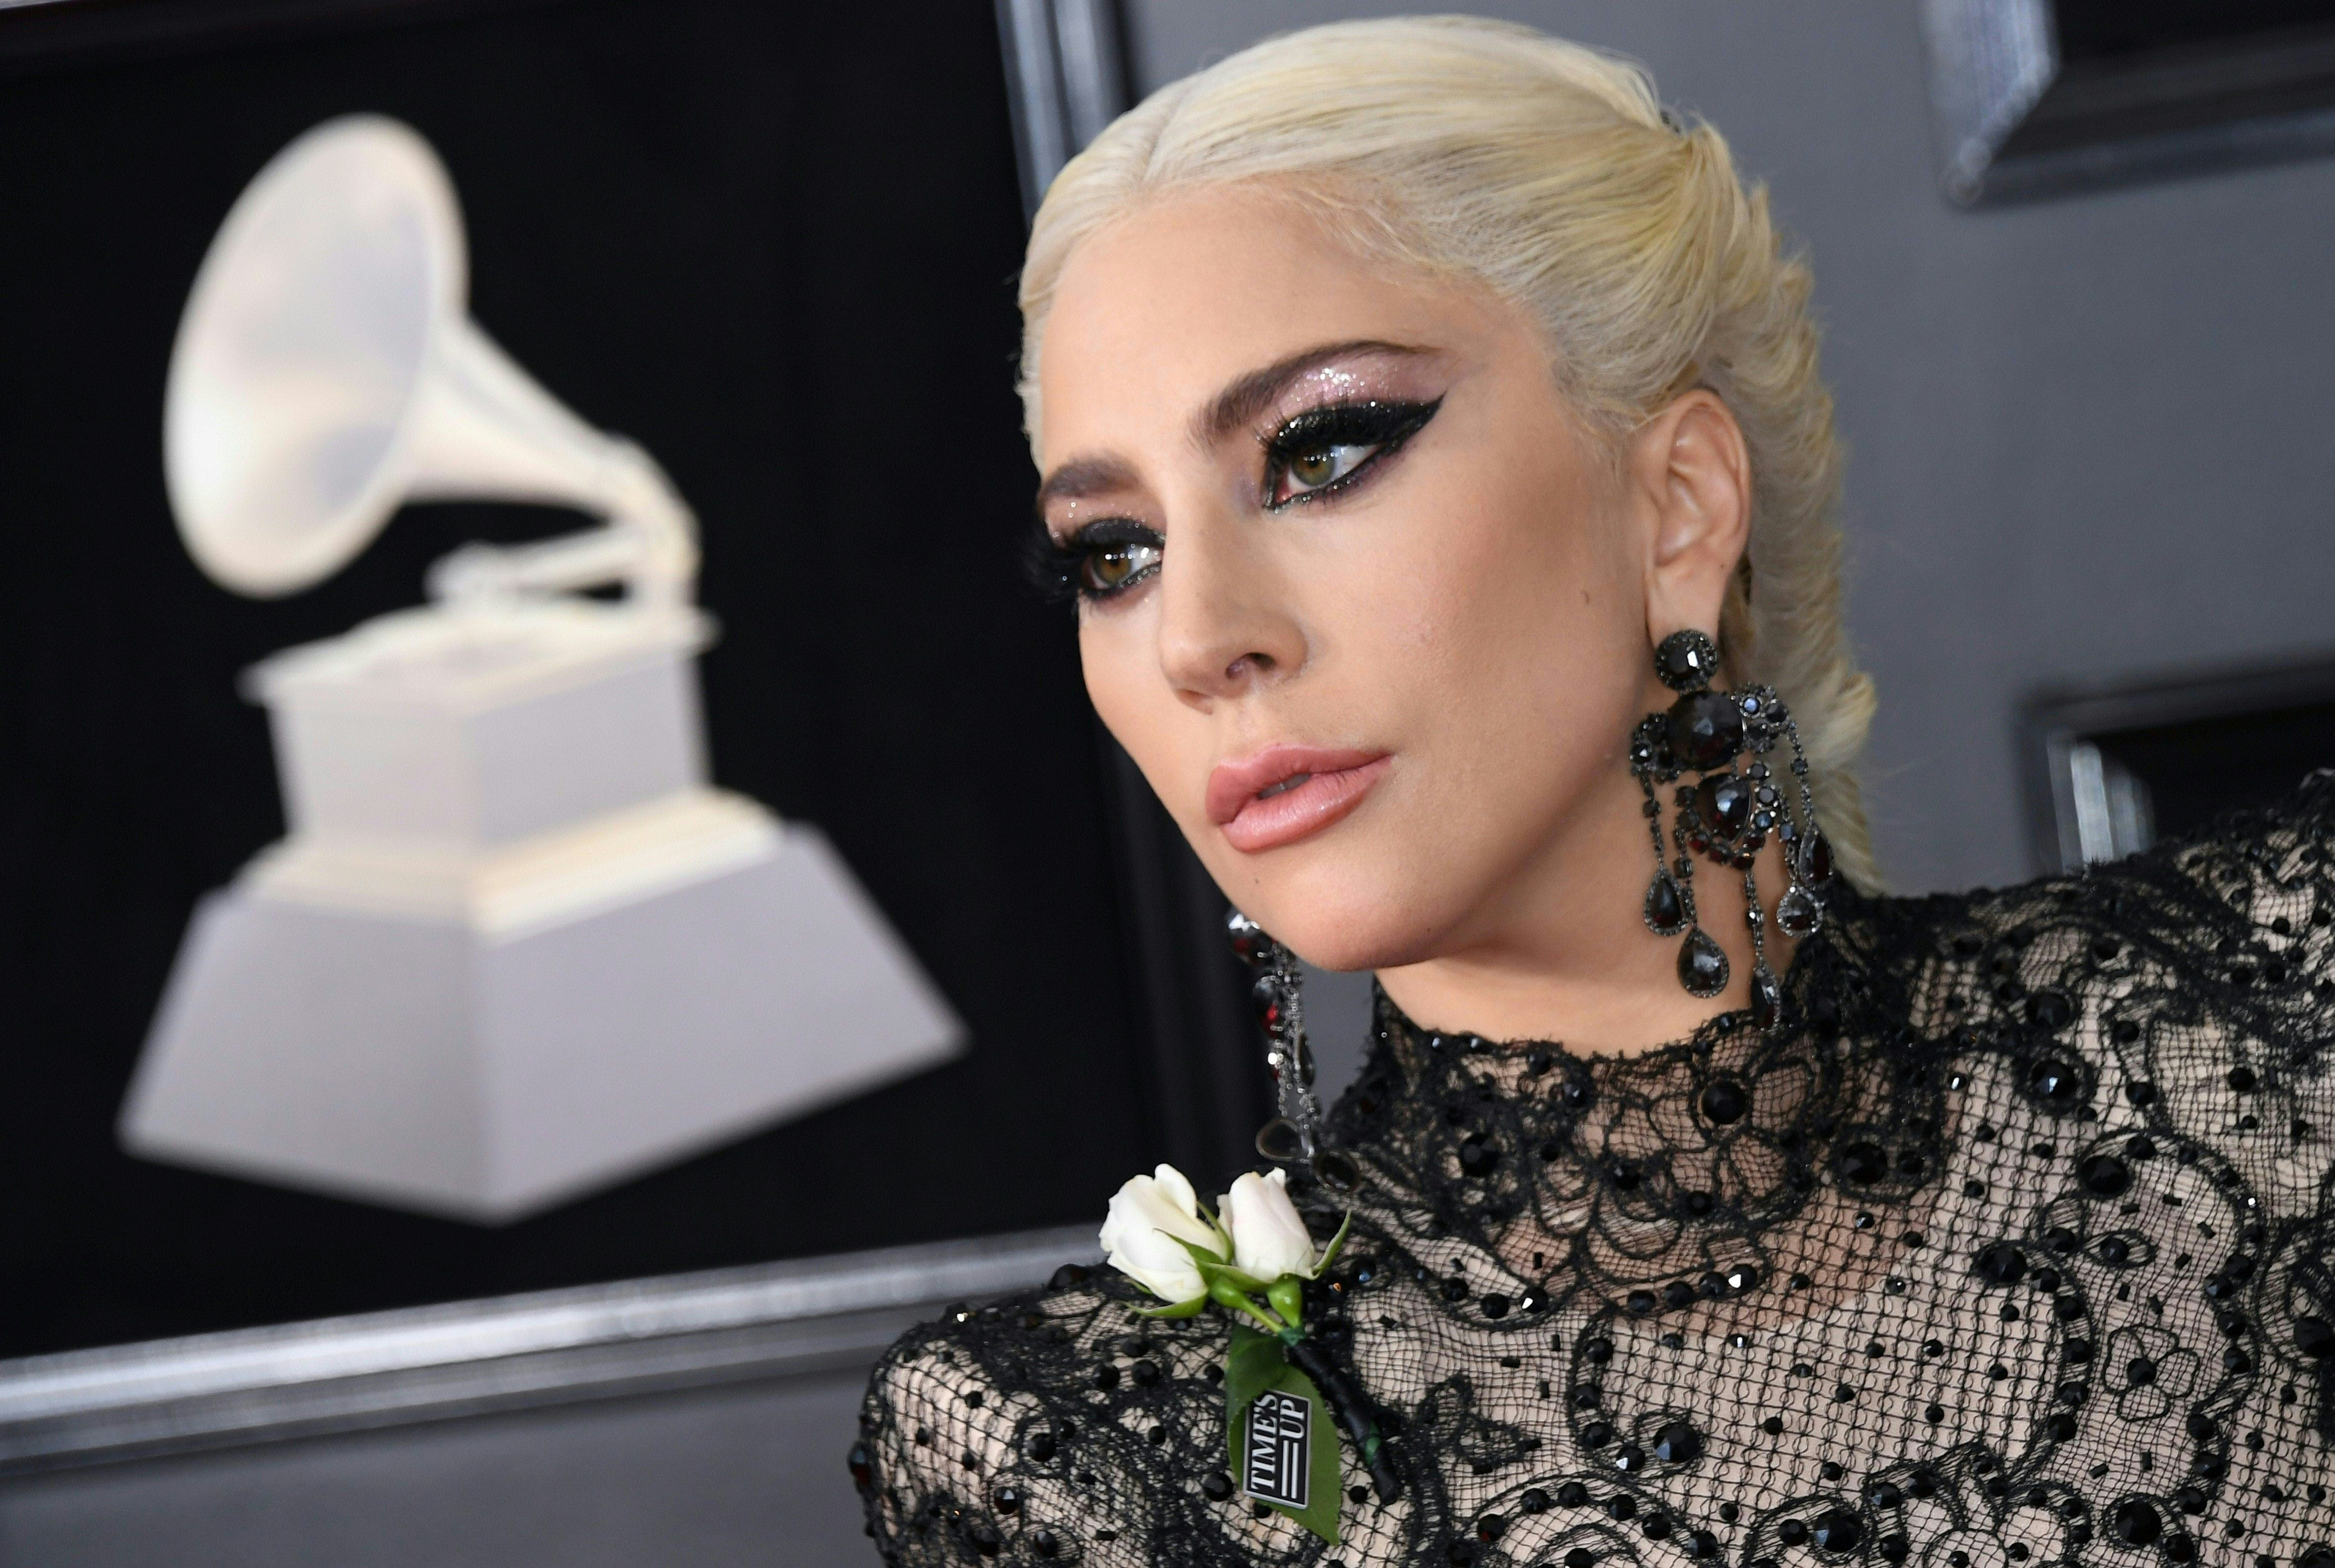 Lady Gaga Flashes Her Post Op Vagina naked (55 photos), Twitter Celebrity pics